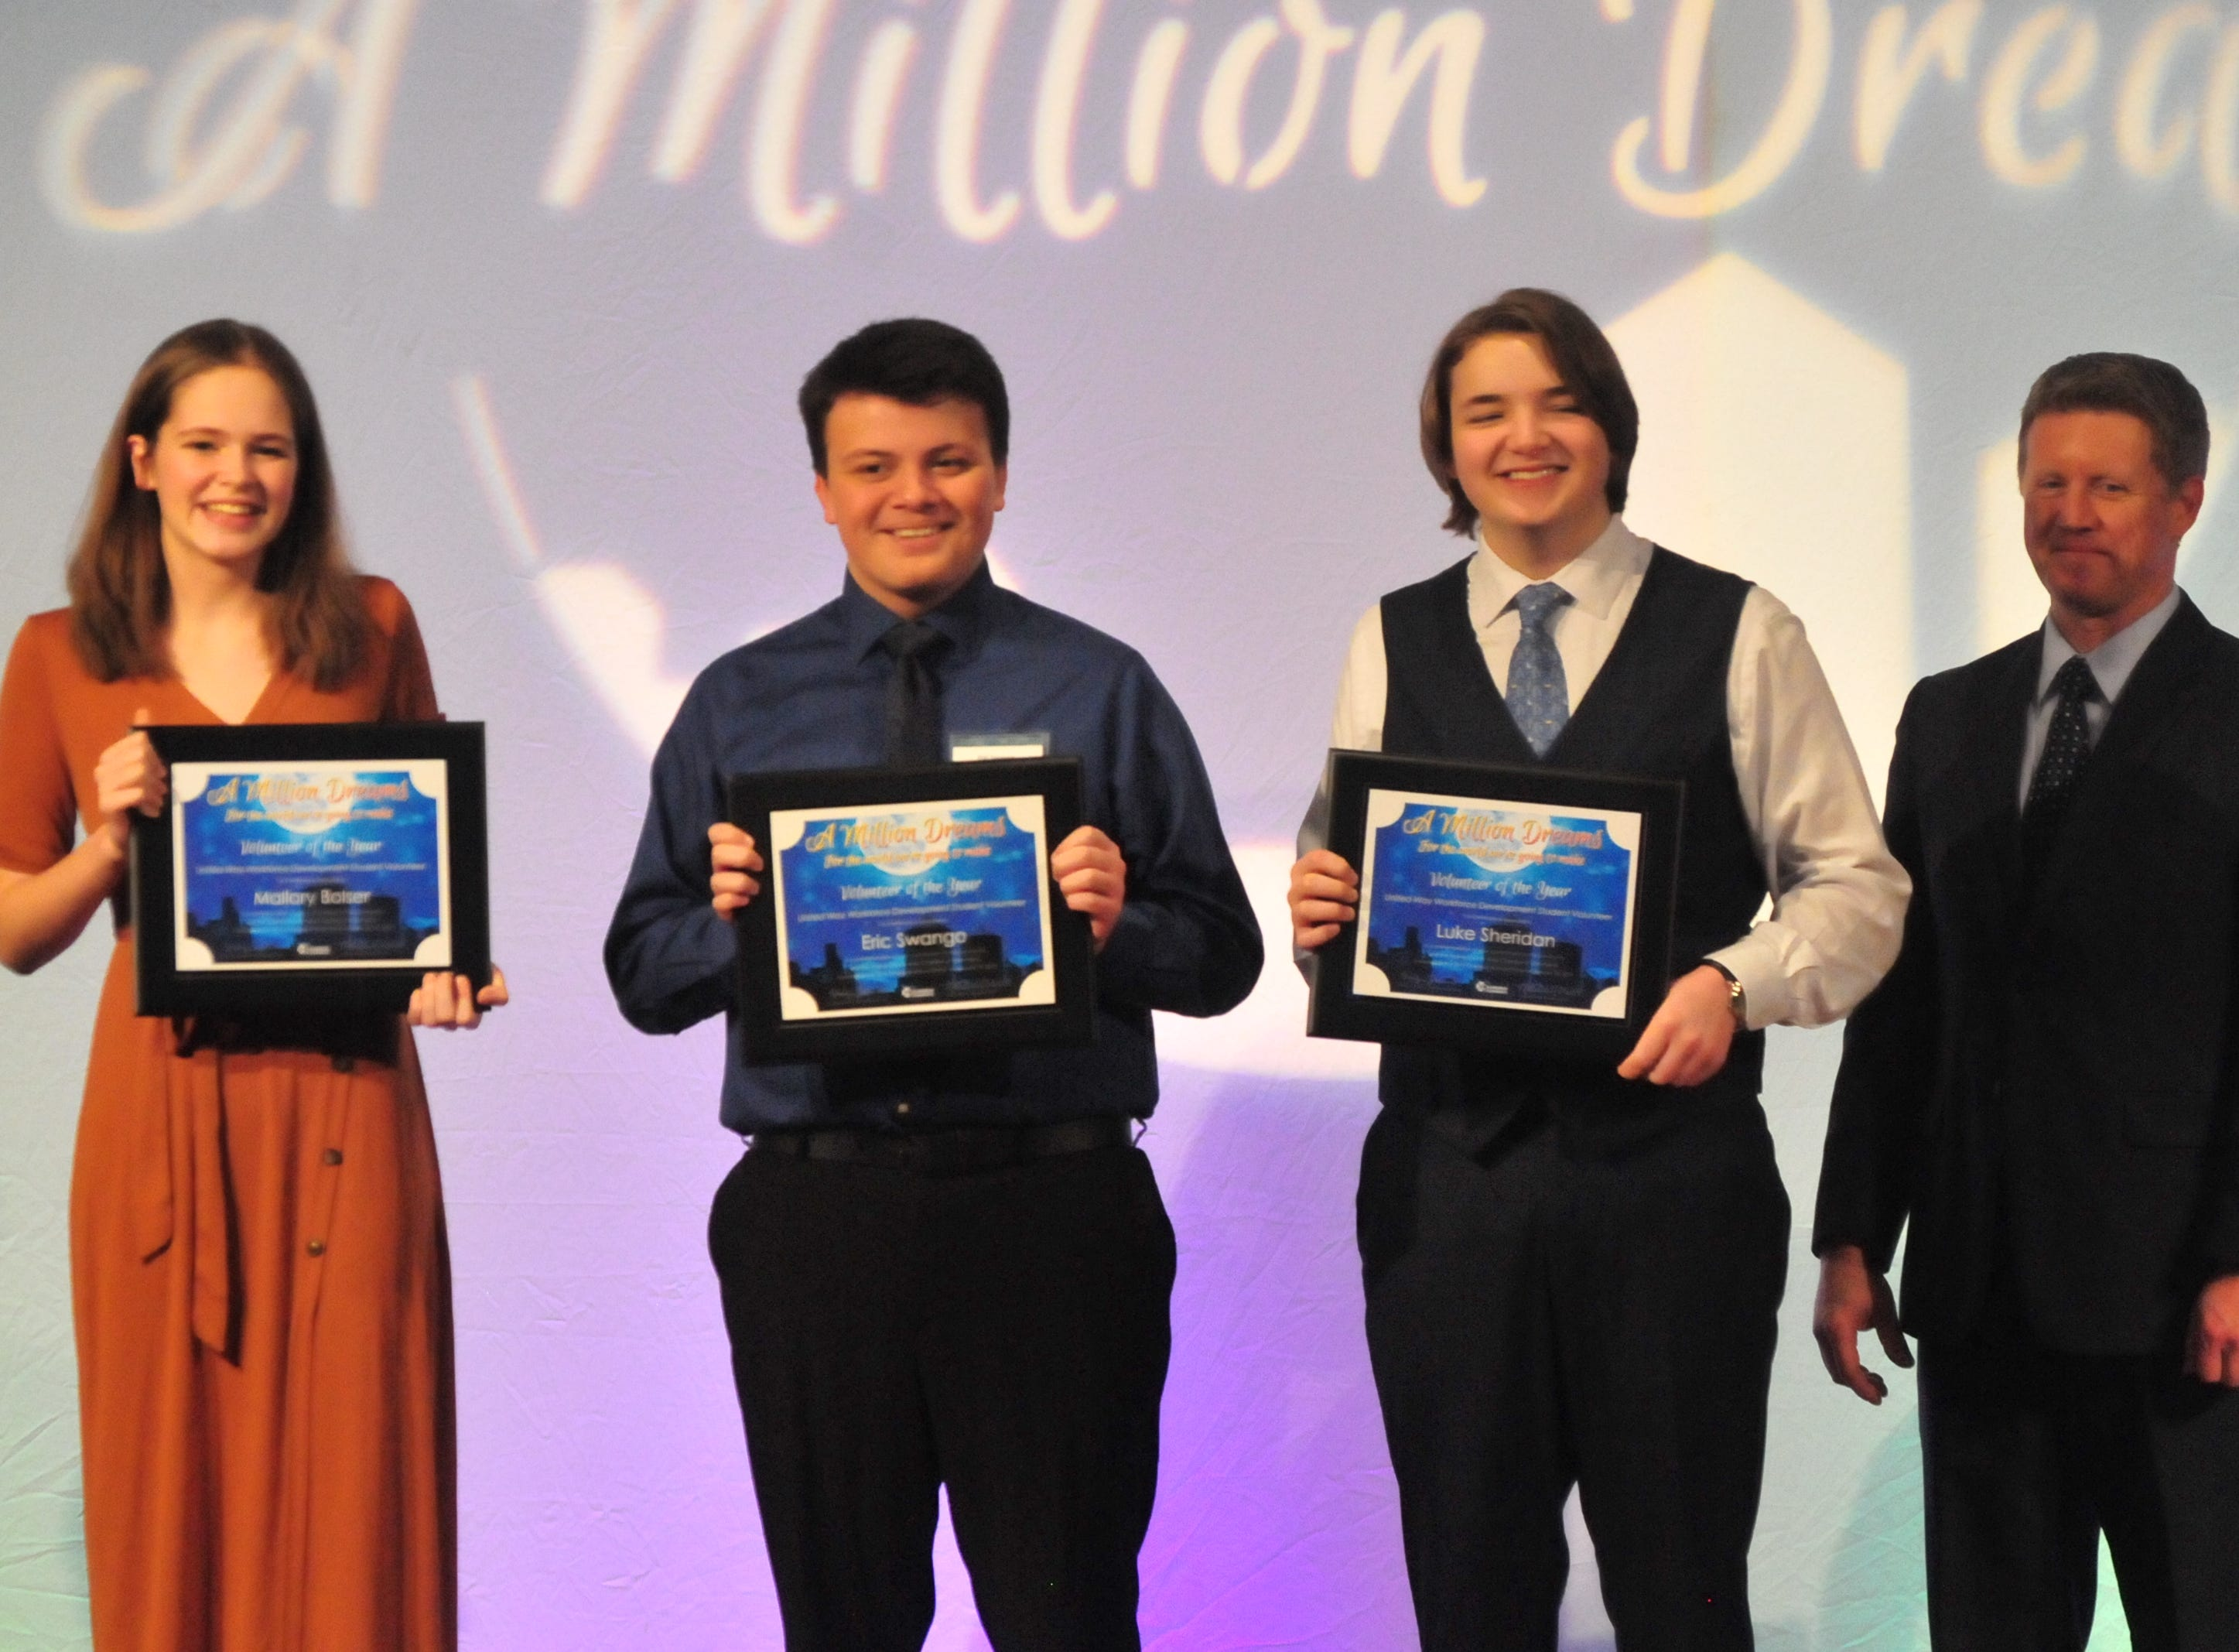 Mallory Bolser, Eric Swango and Luke Sheridan were honored Friday night as Volunteers of the Year for the Wayne County Area Chamber of Commerce.